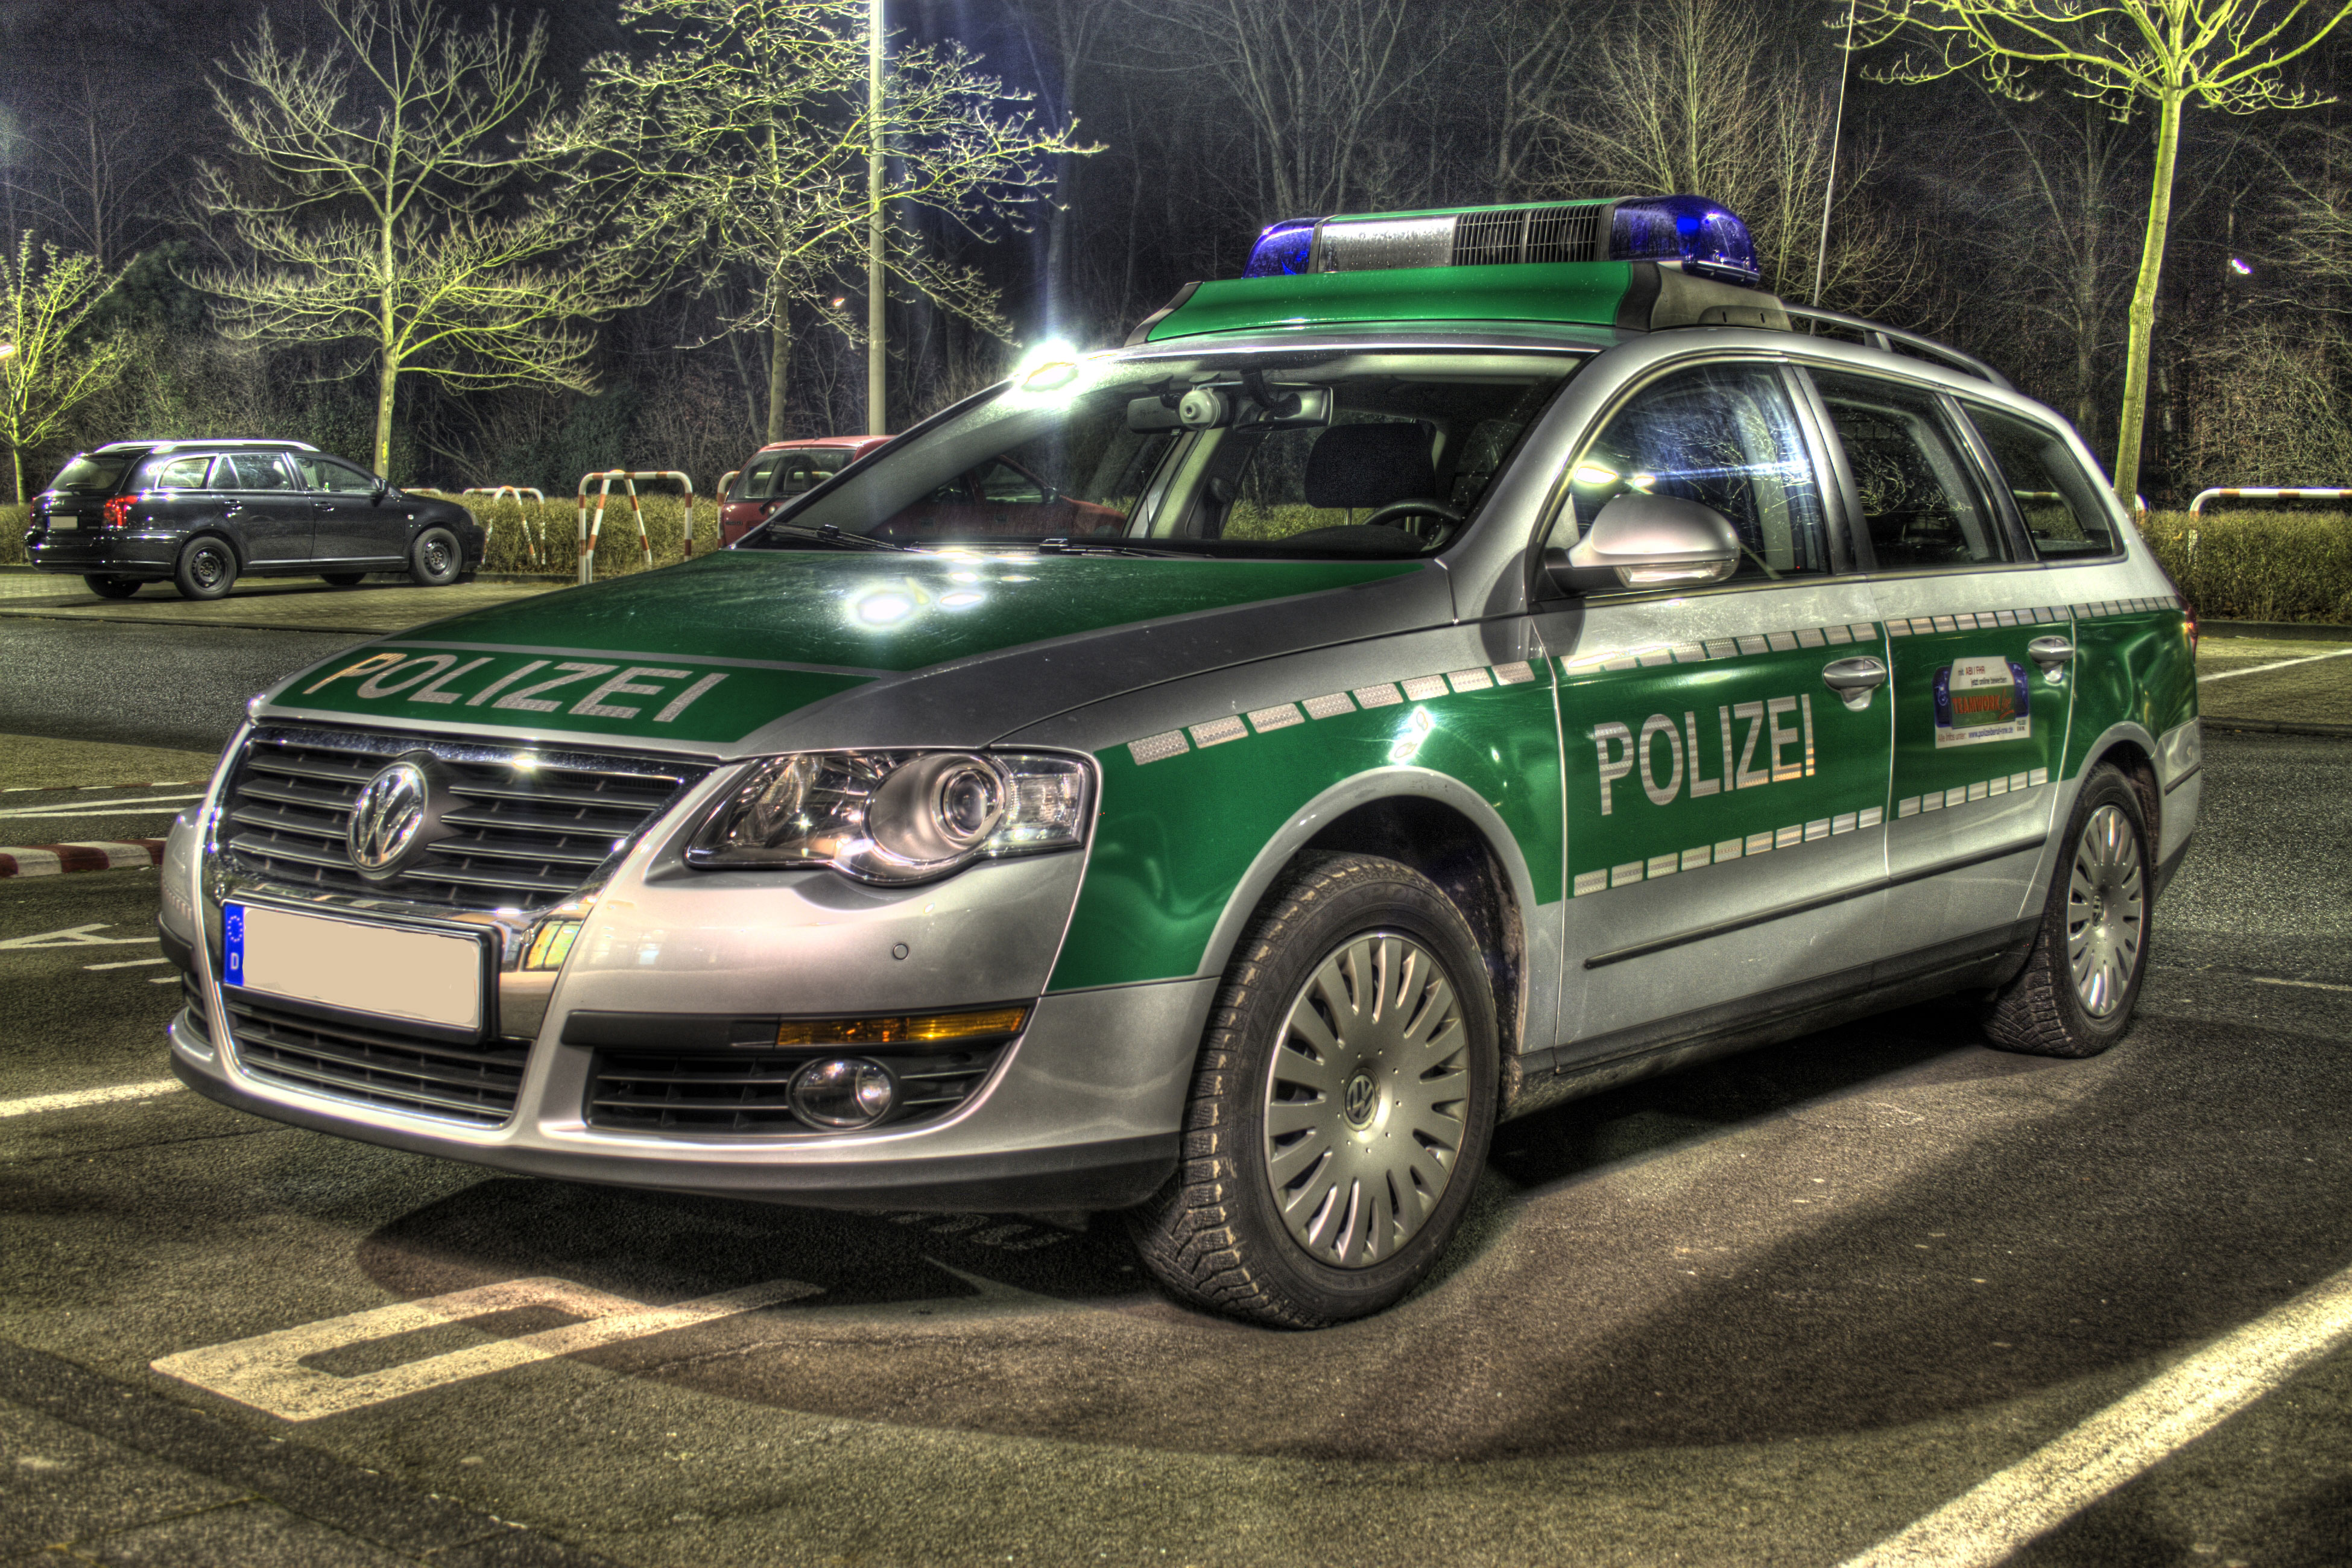 File Polizei Vw Passat Hdr Jpg Wikimedia Commons